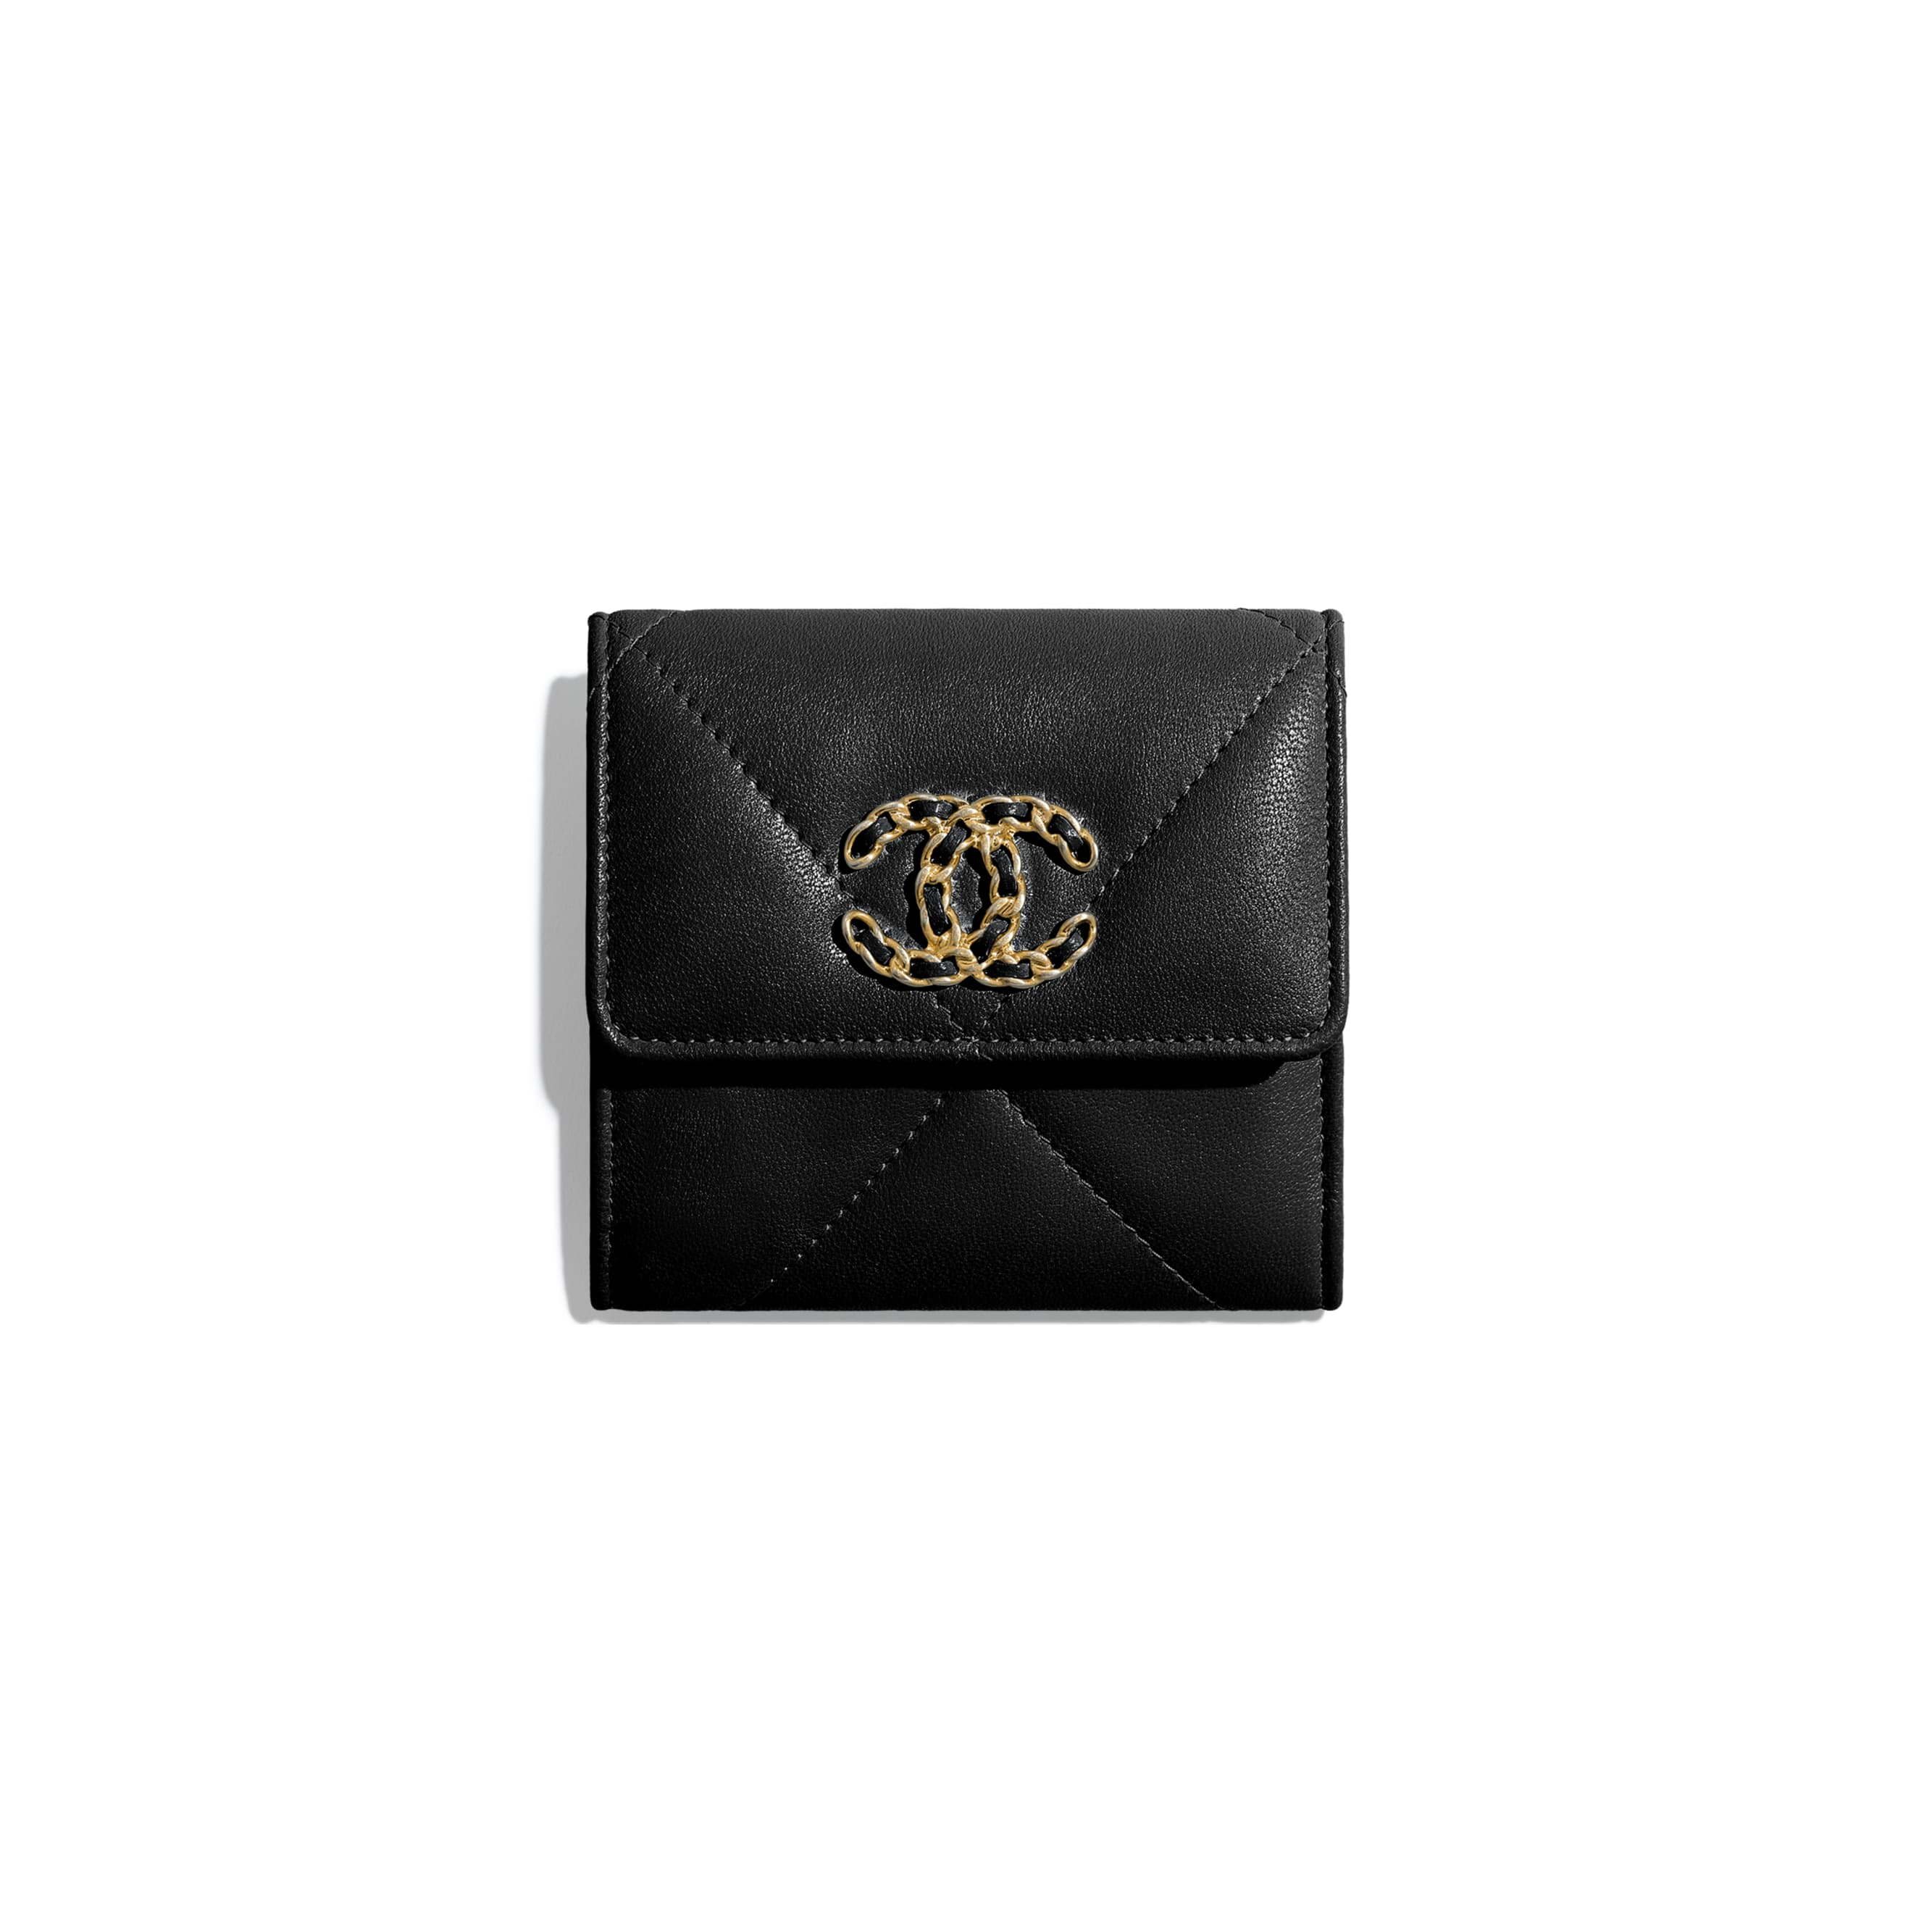 CHANEL 19 Small Flap Wallet - Black - Shiny Goatskin & Gold-Tone Metal - CHANEL - Default view - see standard sized version